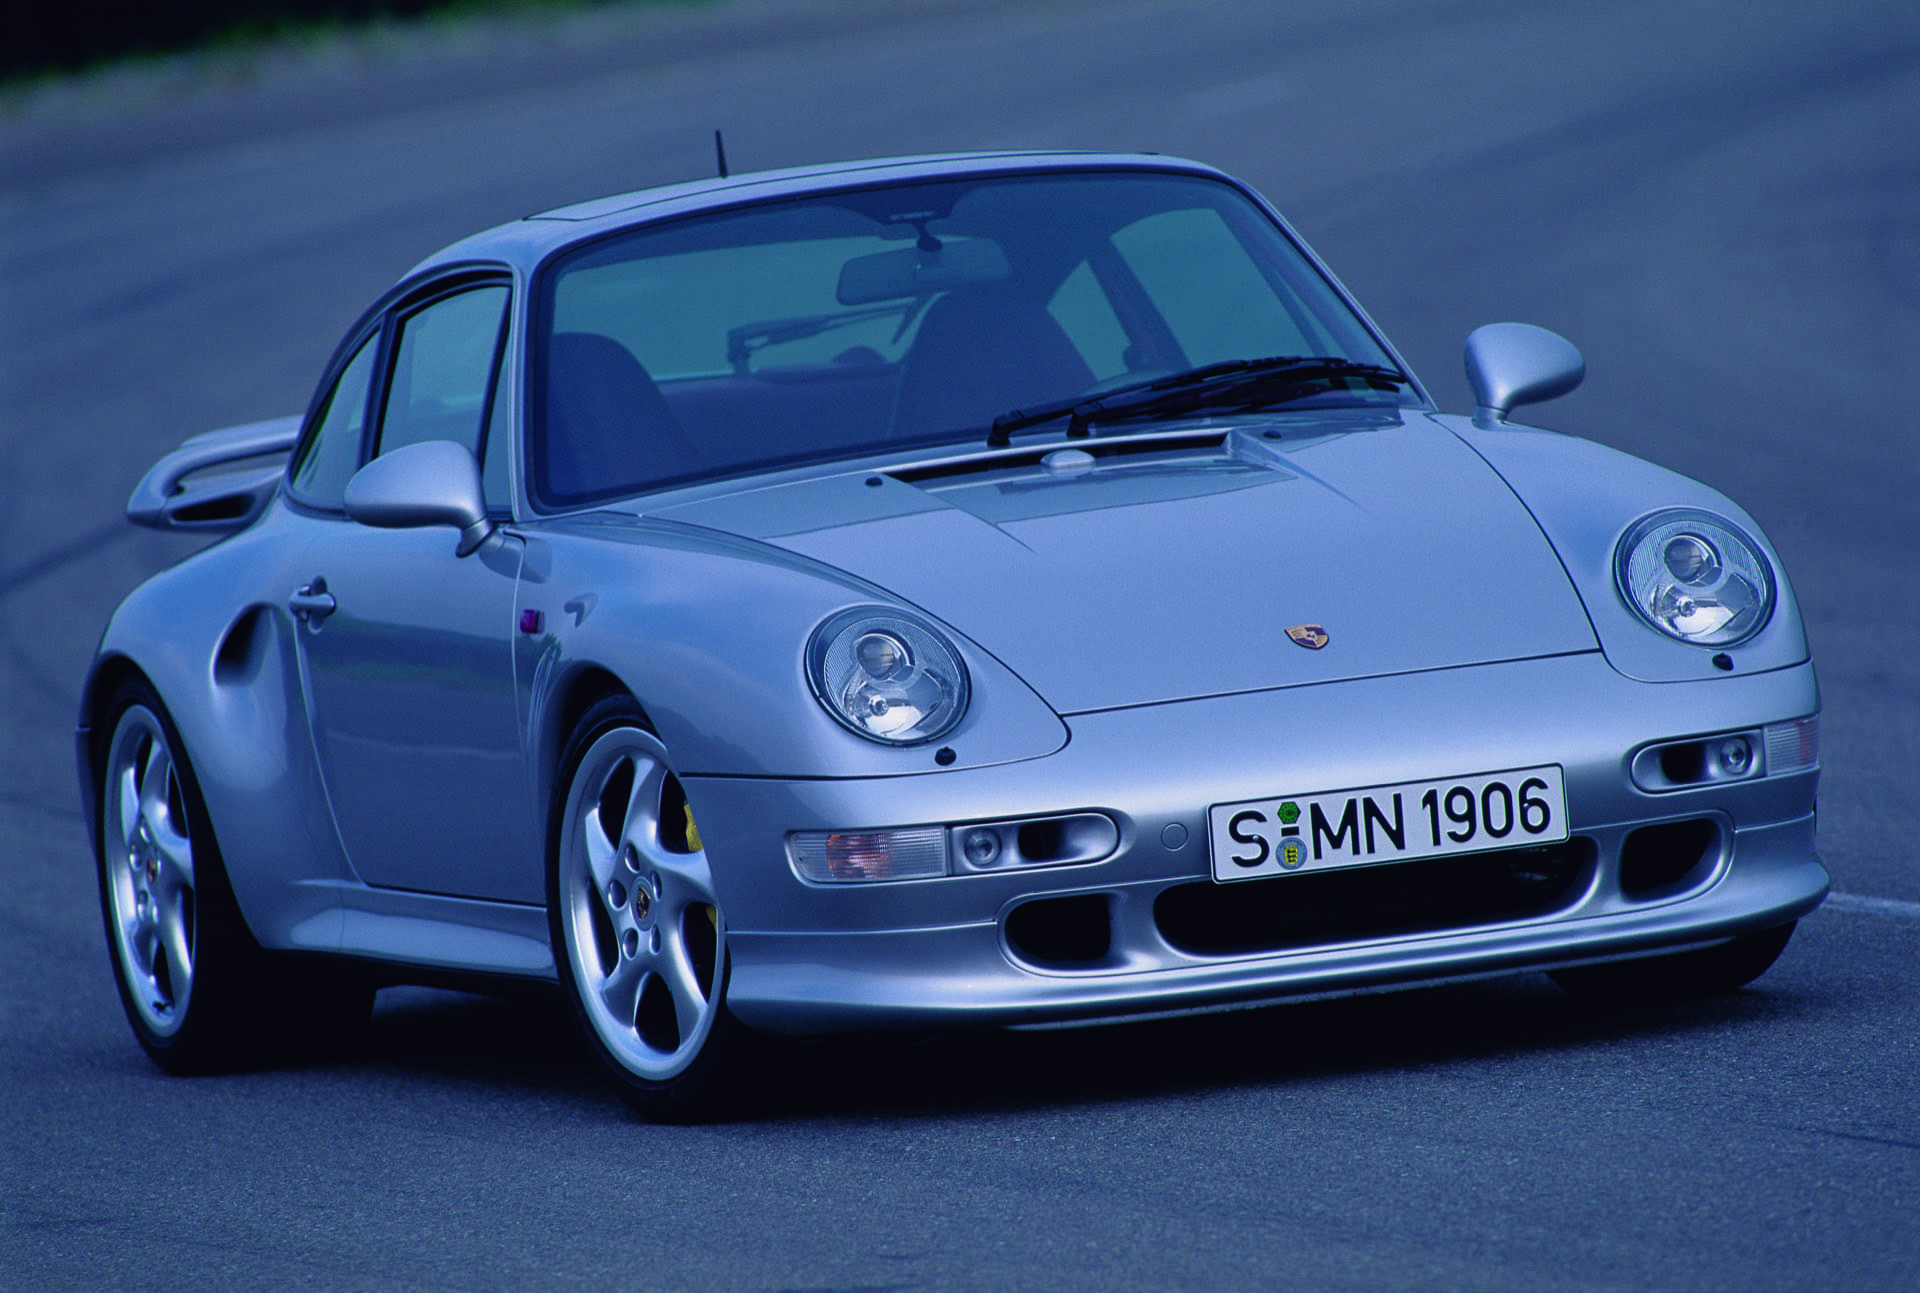 Porsche 911 993 Turbo S 3 6 Coupe 1998